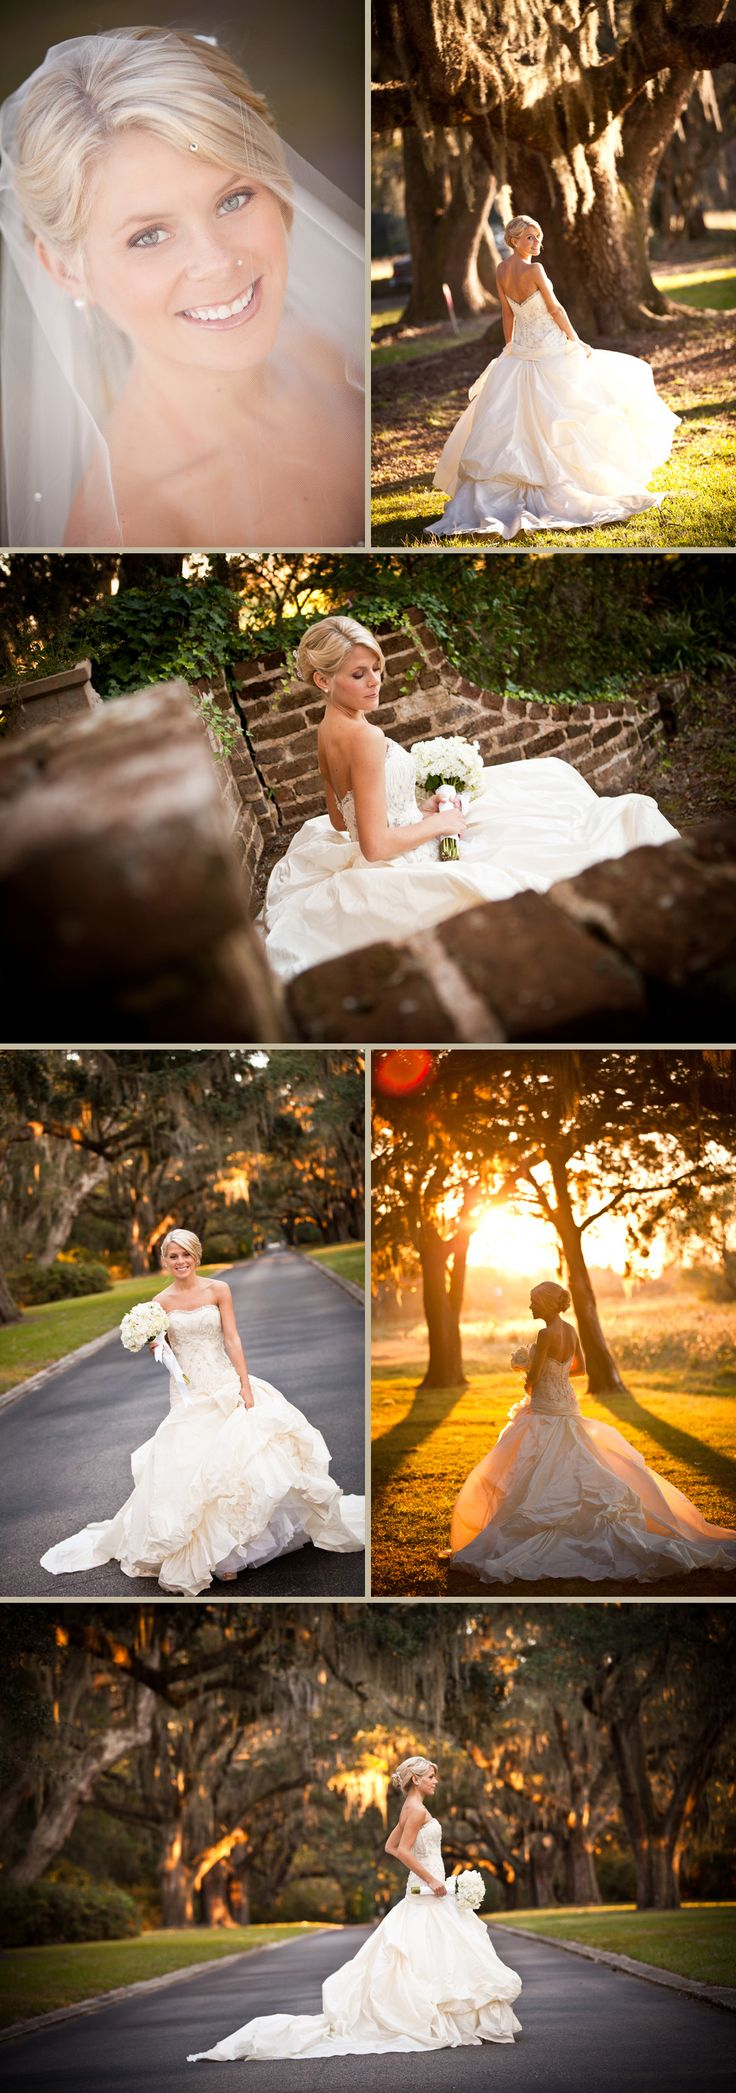 This has Southern wedding written allll over it! - Jacki you should get some shots like this, so pretty!